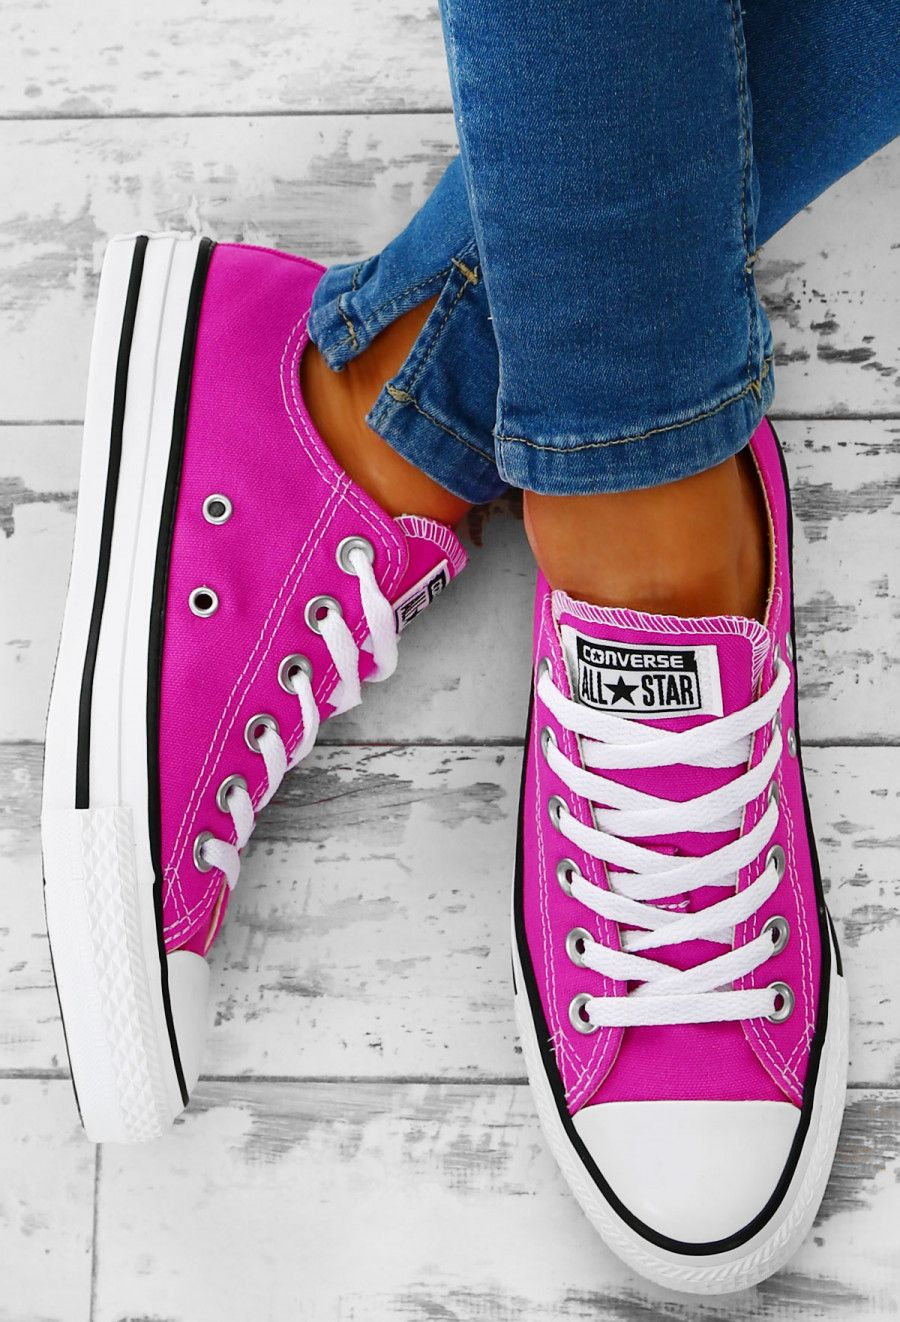 46b28c7933c6 Chuck Taylor Converse All Star Fuchsia Trainers - UK 3